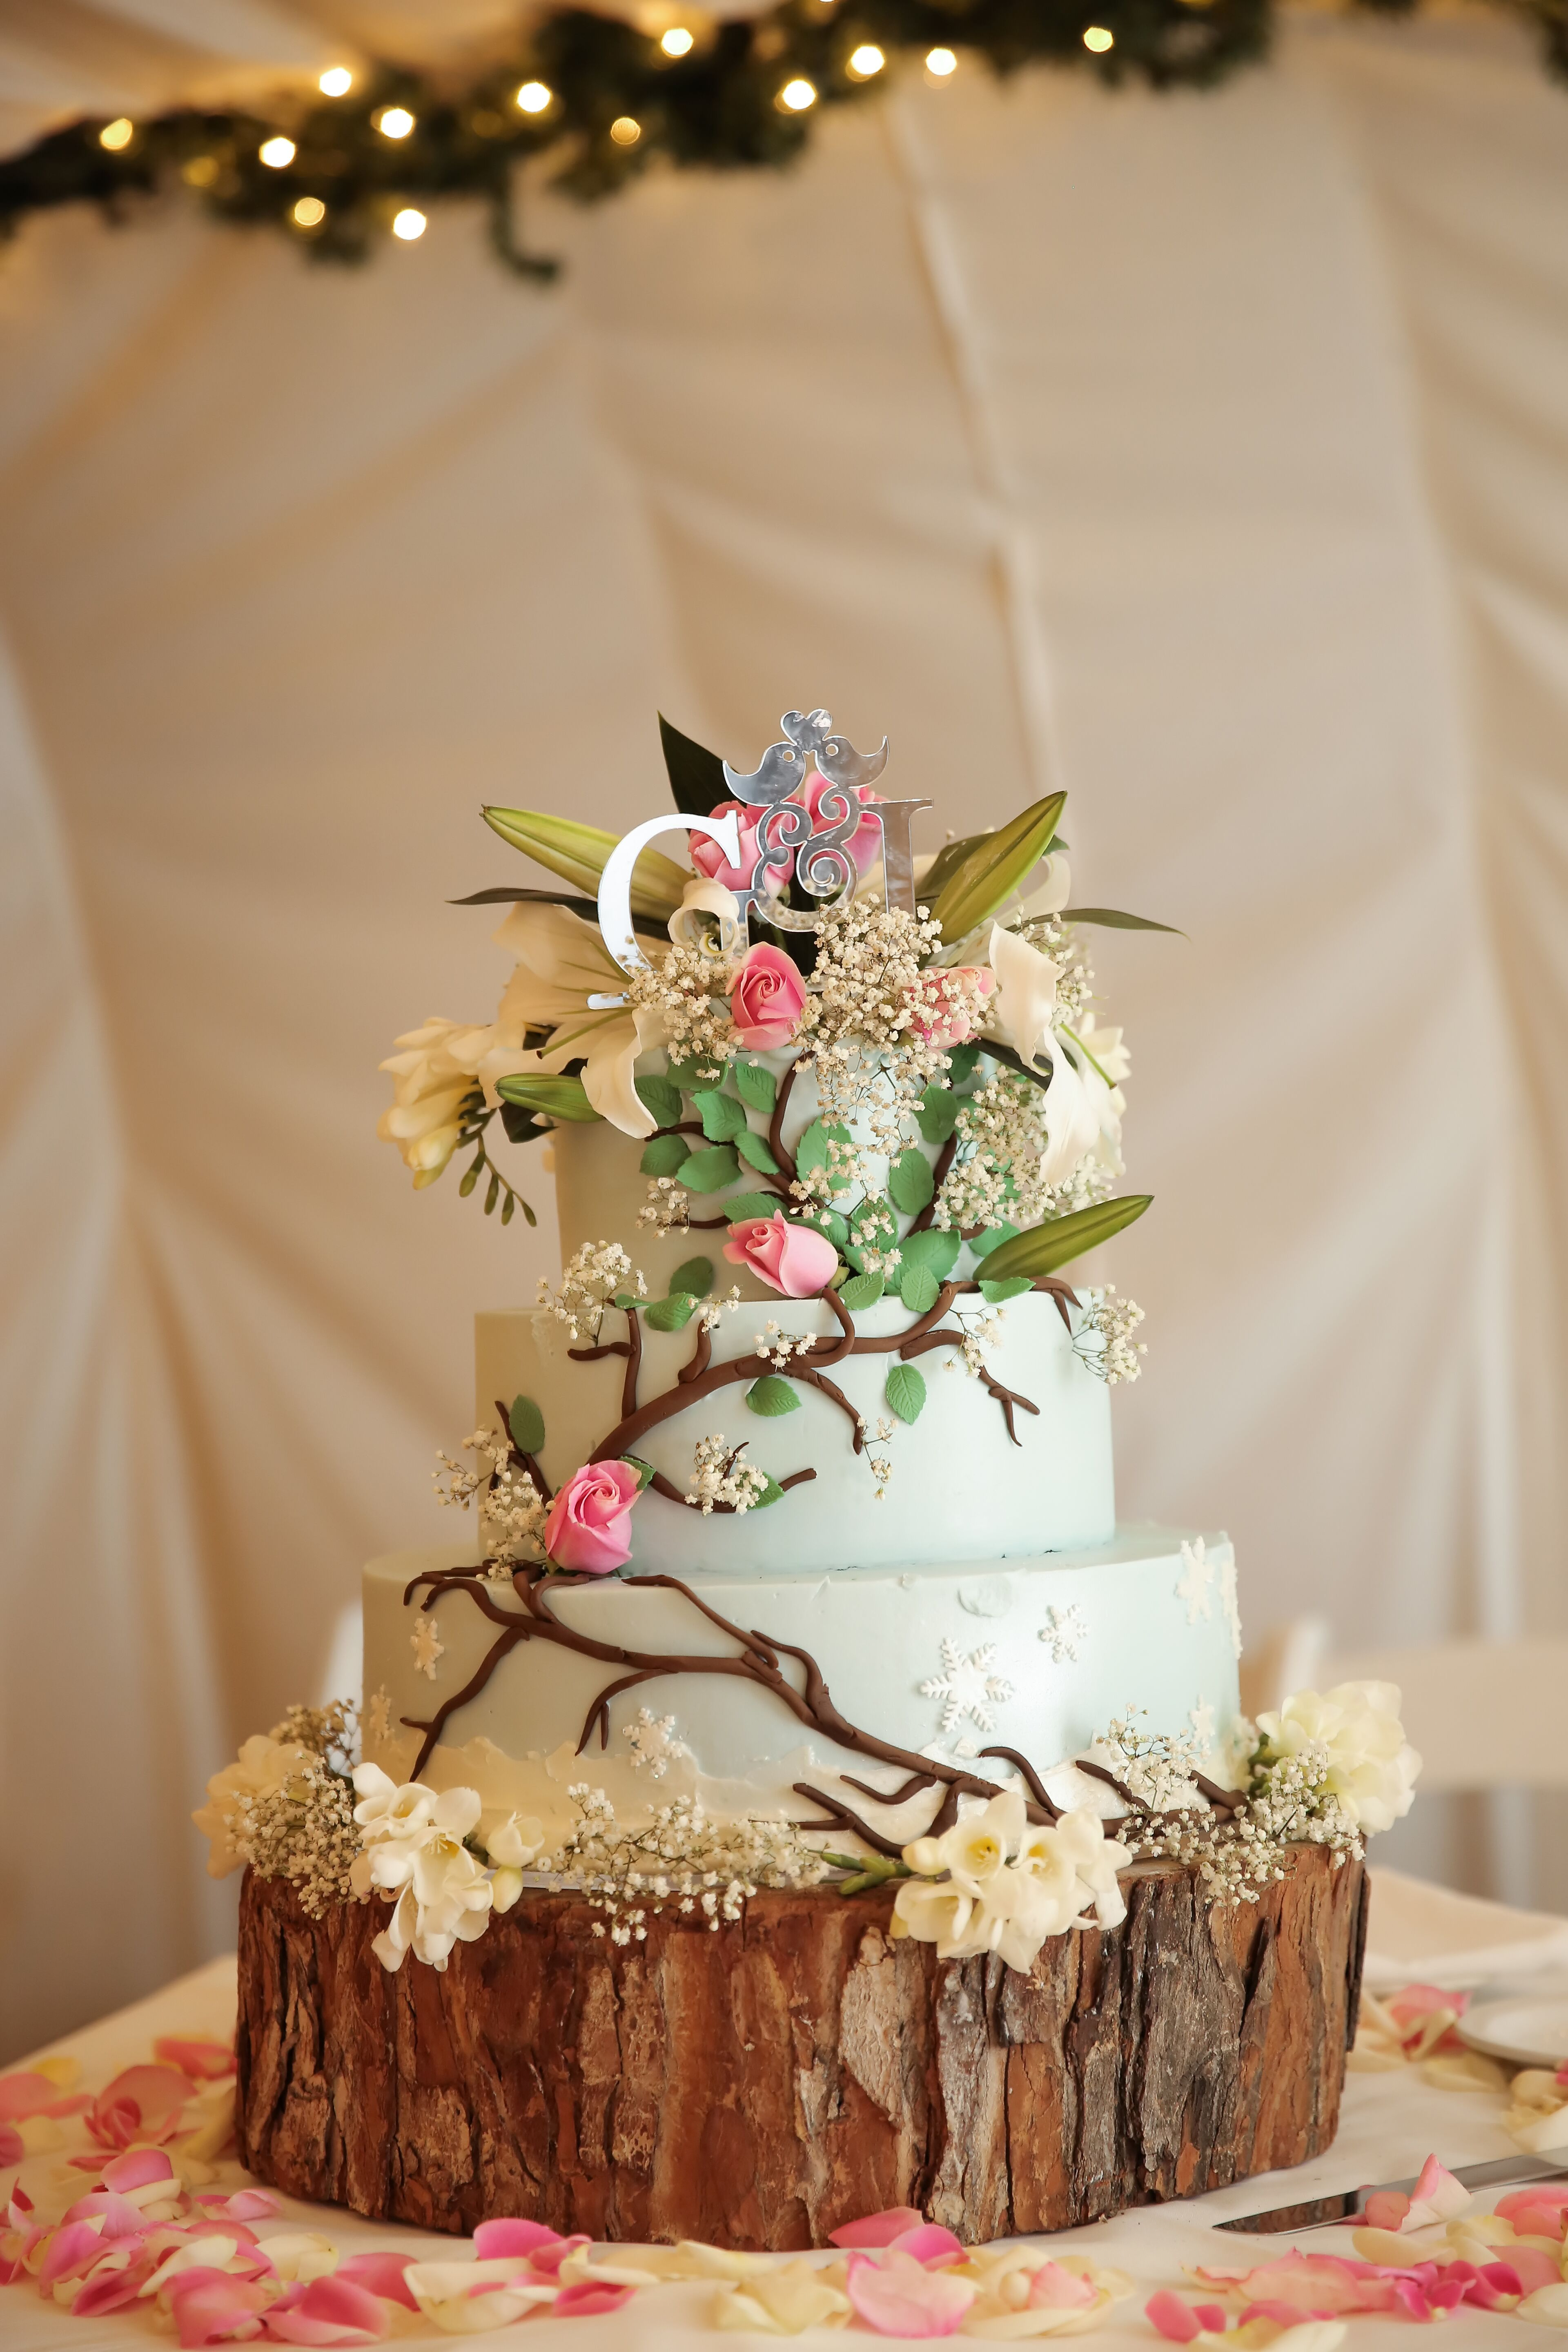 Light Blue Wedding Cake With Vines And Flowers